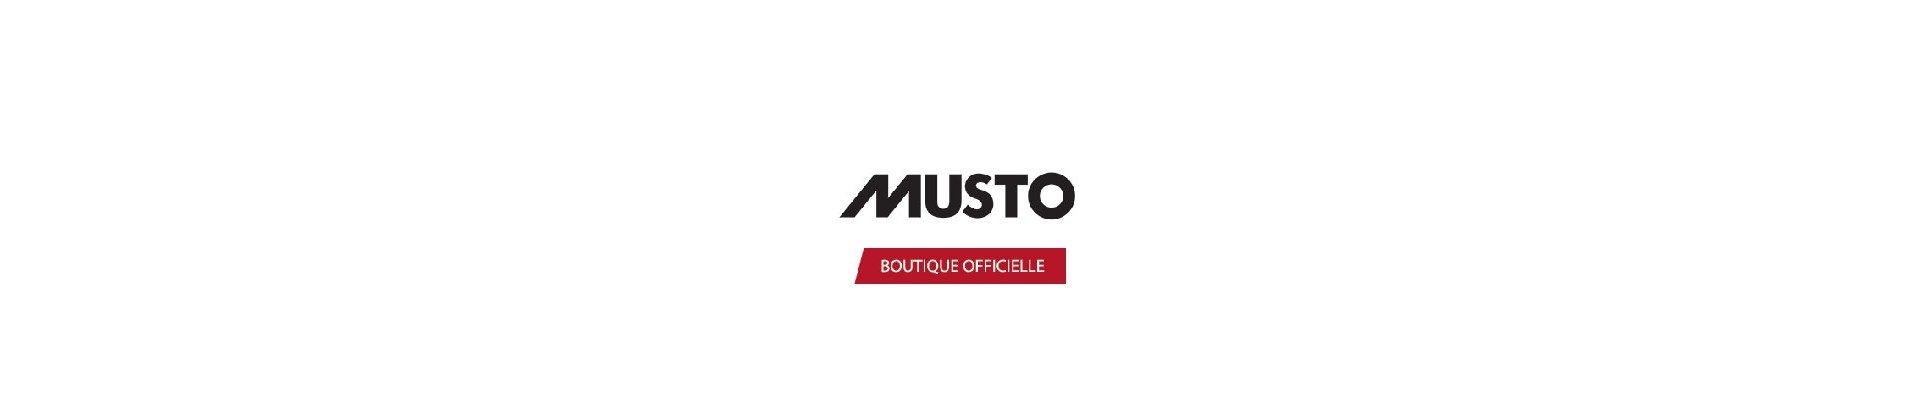 Musto Boat Boots